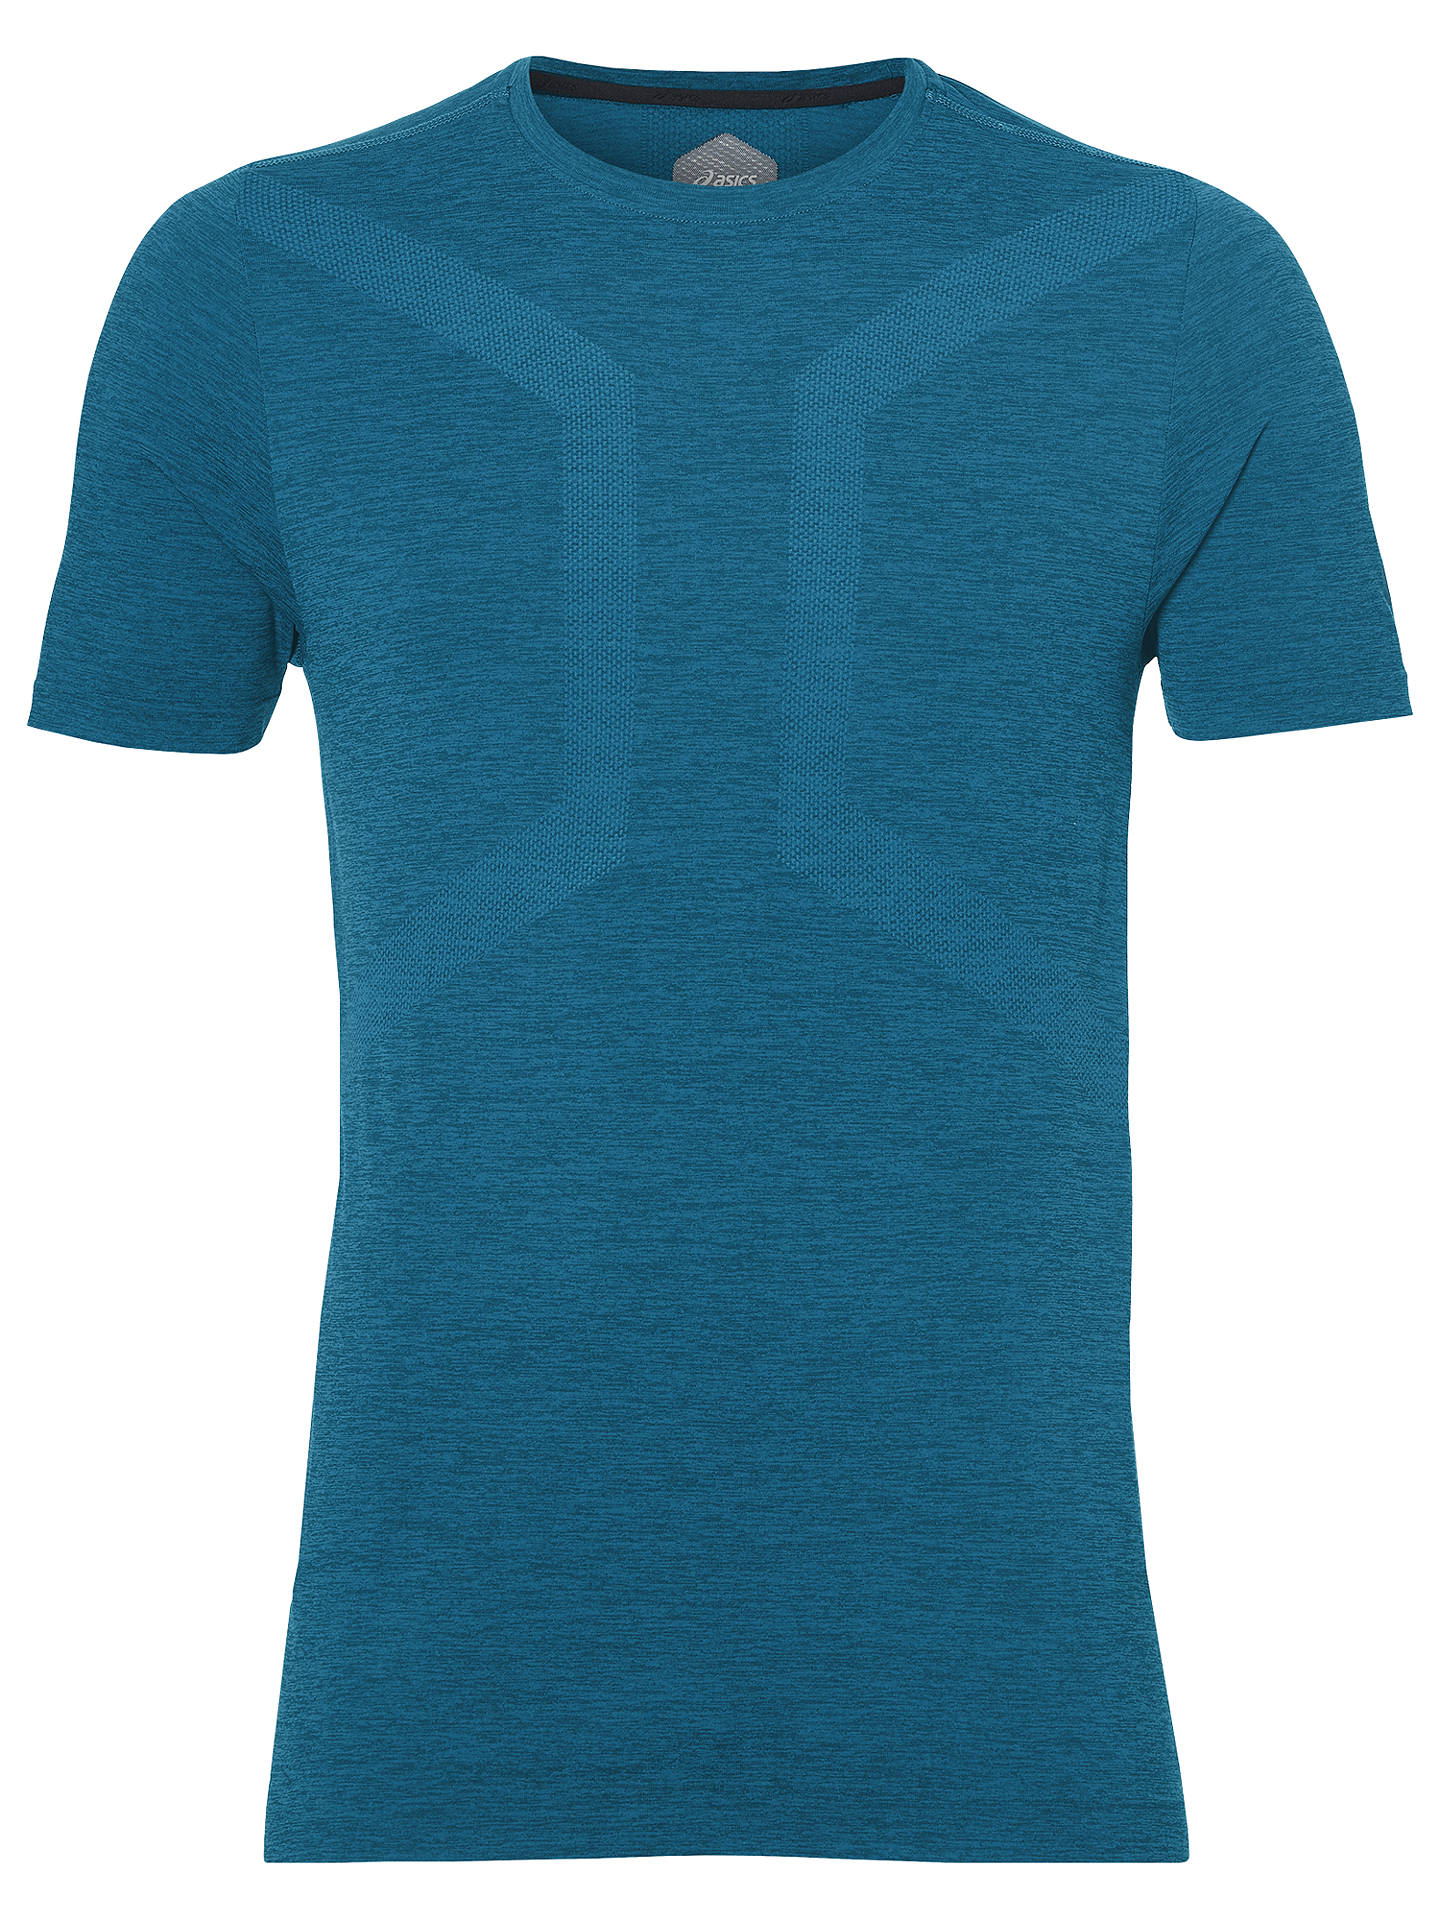 asics mens seamless running tee-shirt